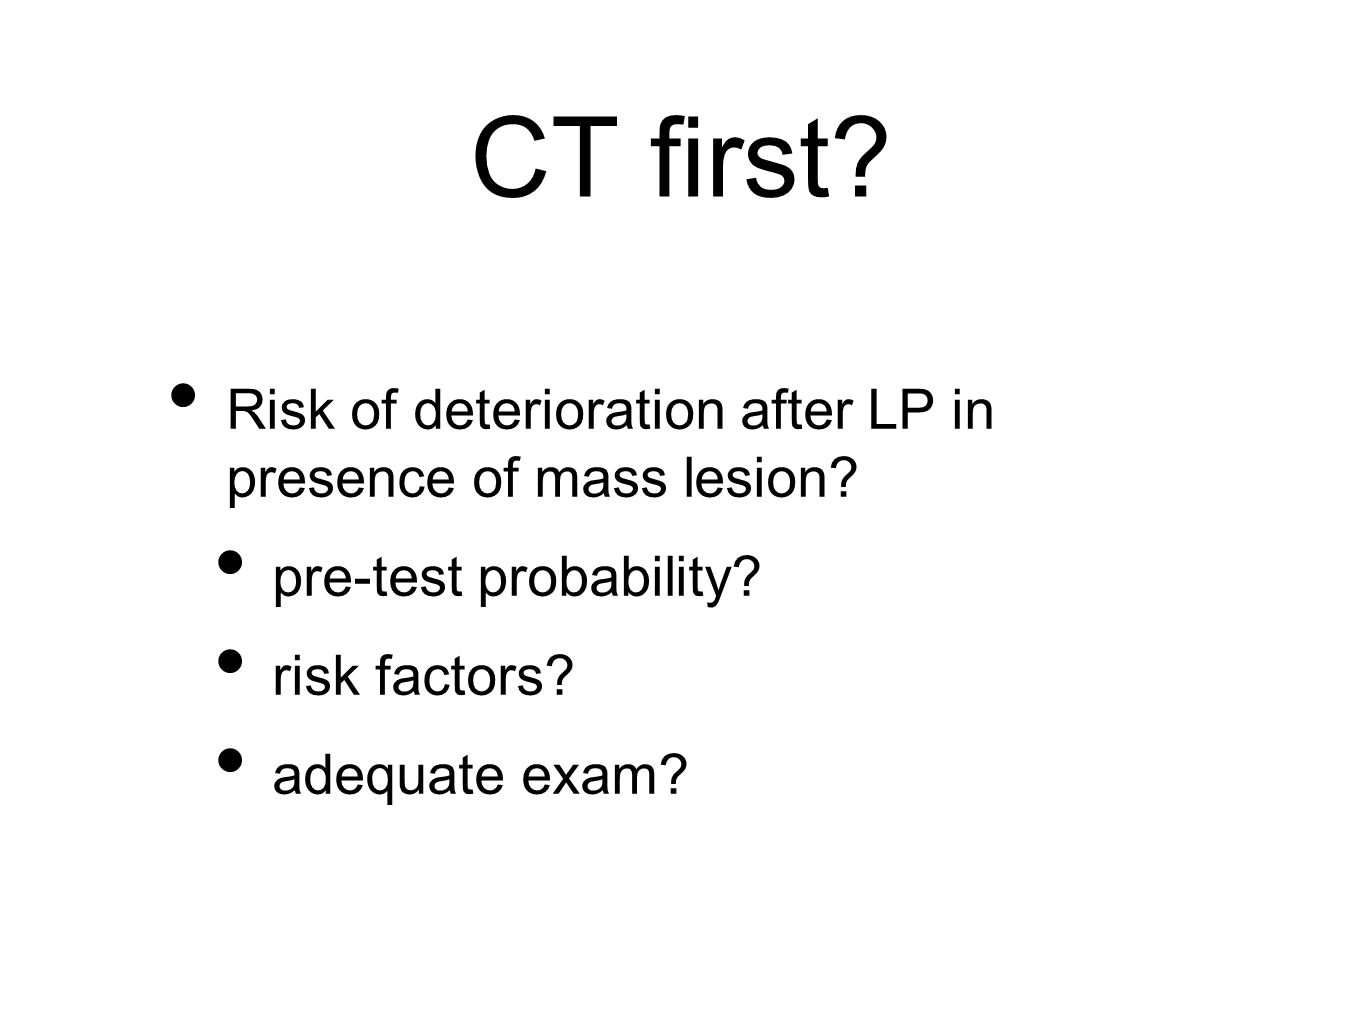 CT first. Risk of deterioration after LP in presence of mass lesion.